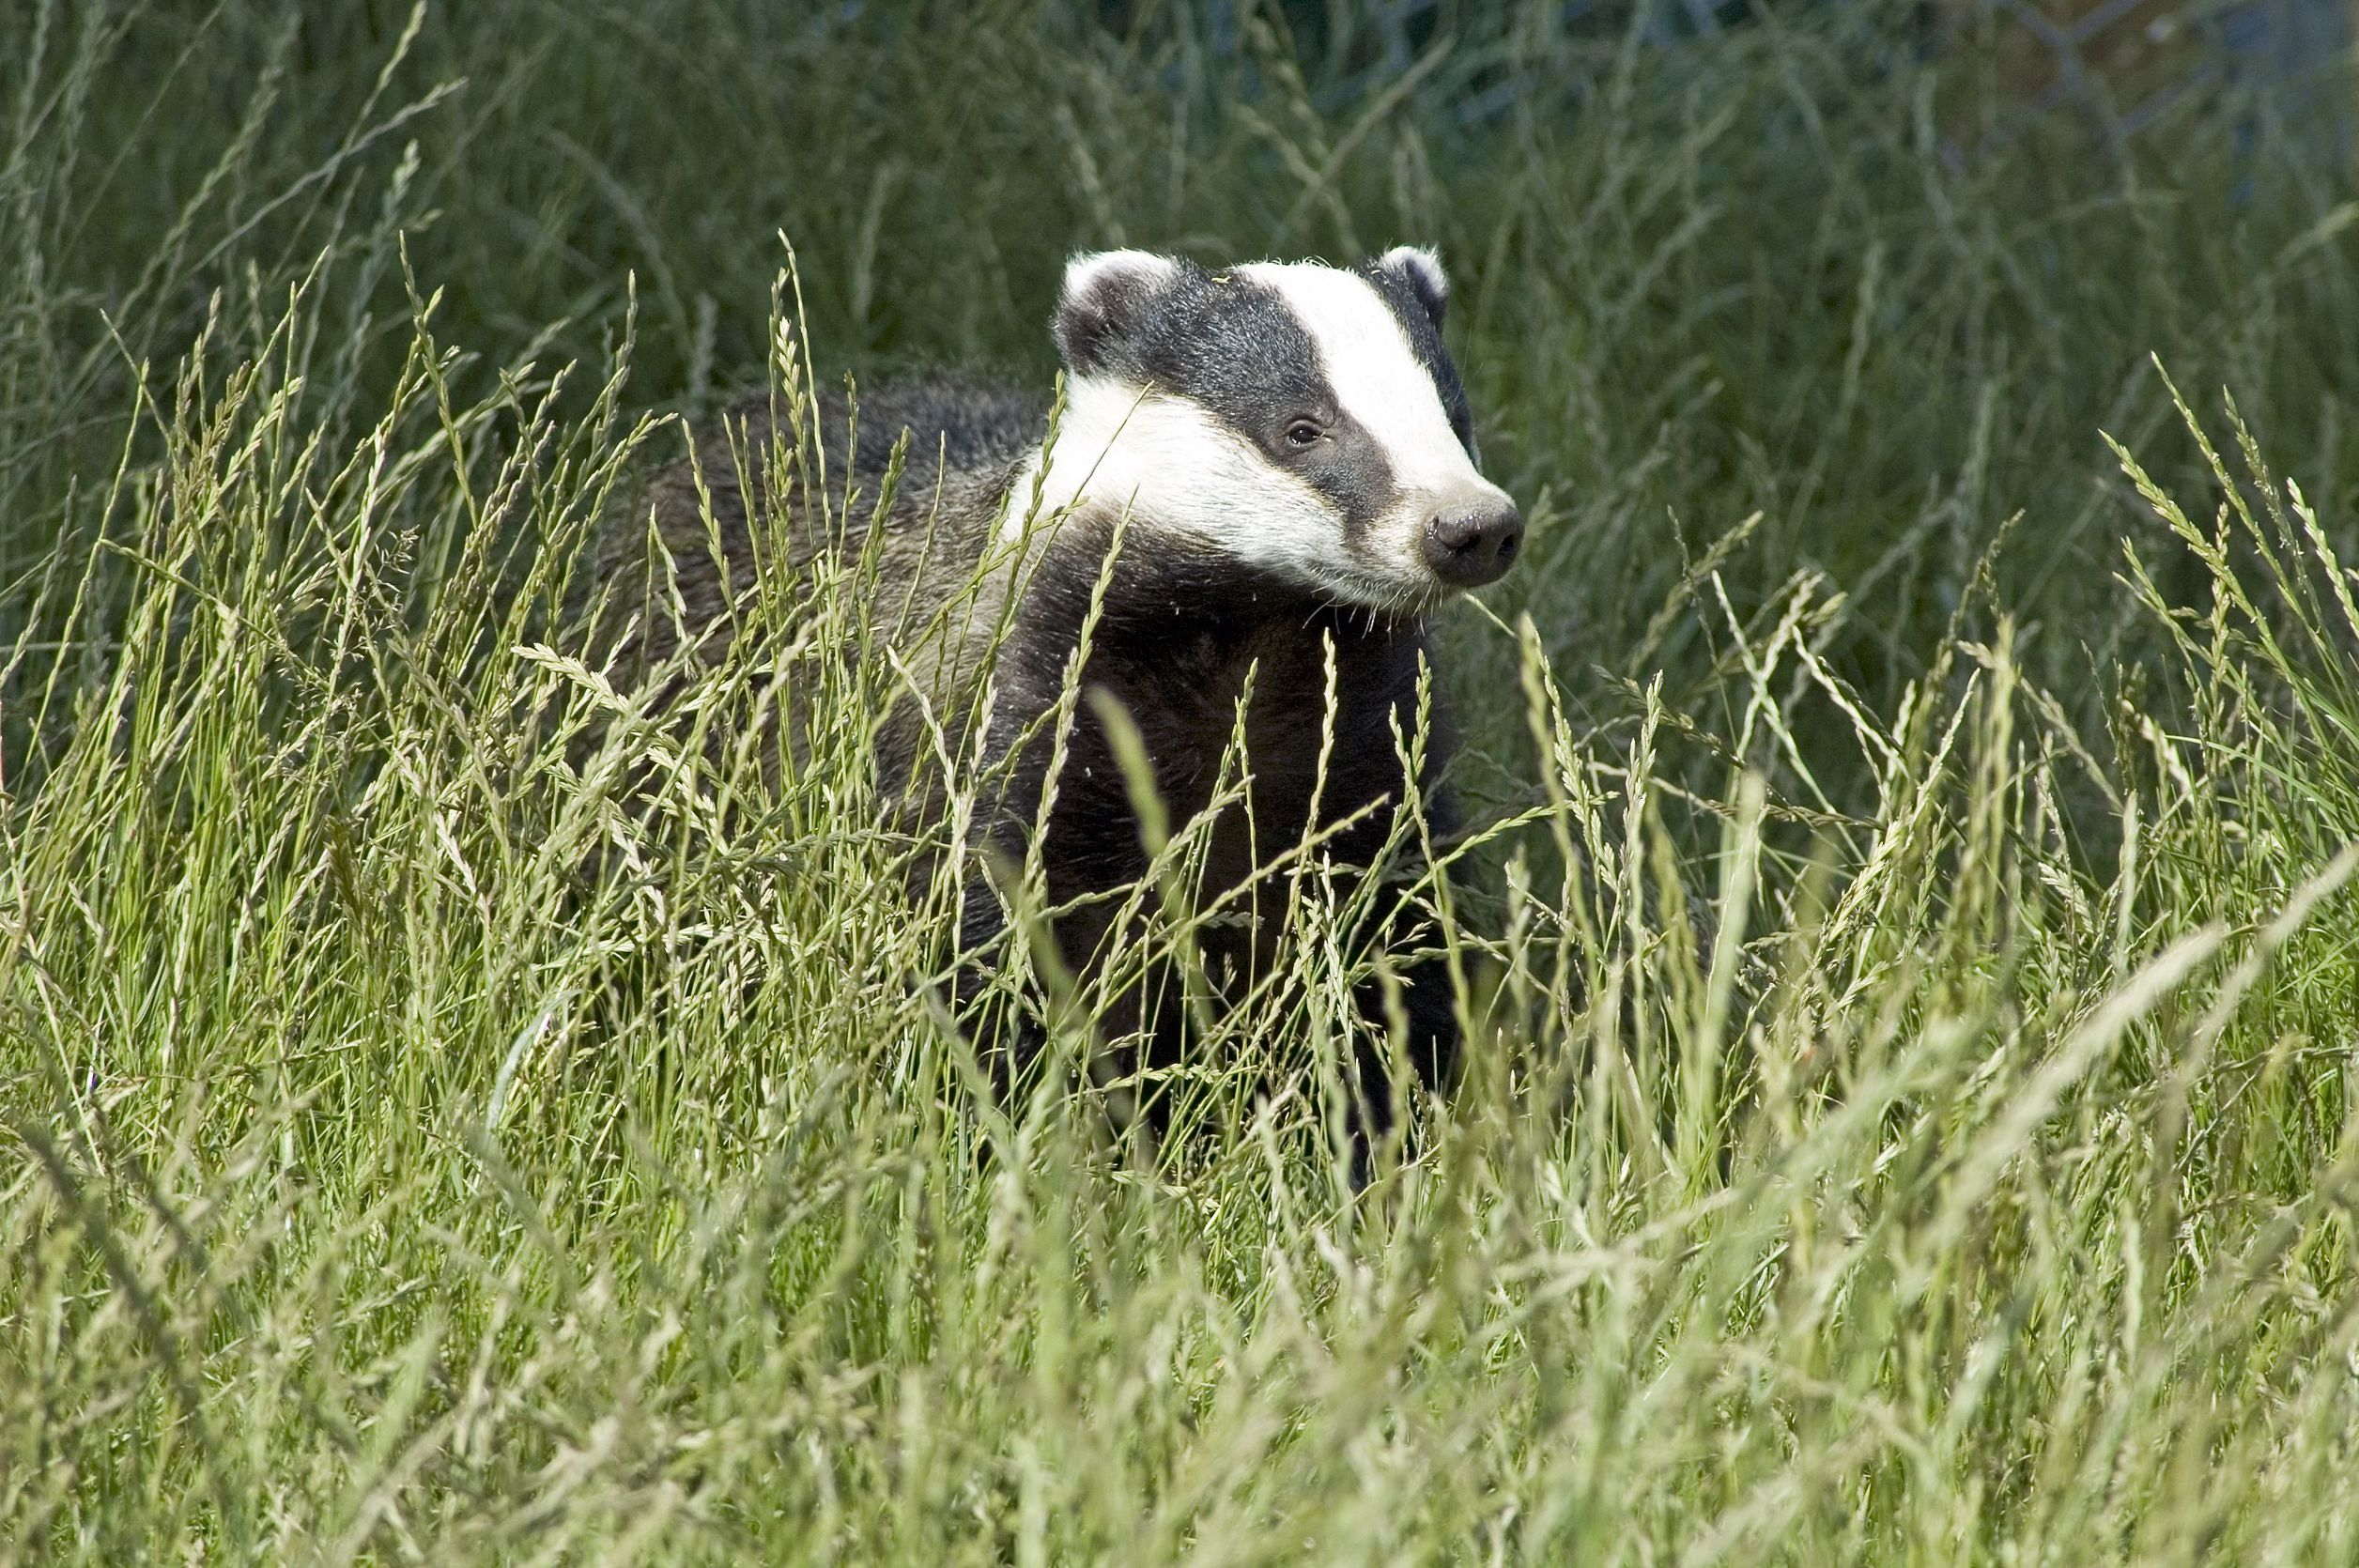 The survey wants to establish a true record of badger populations in Scotland